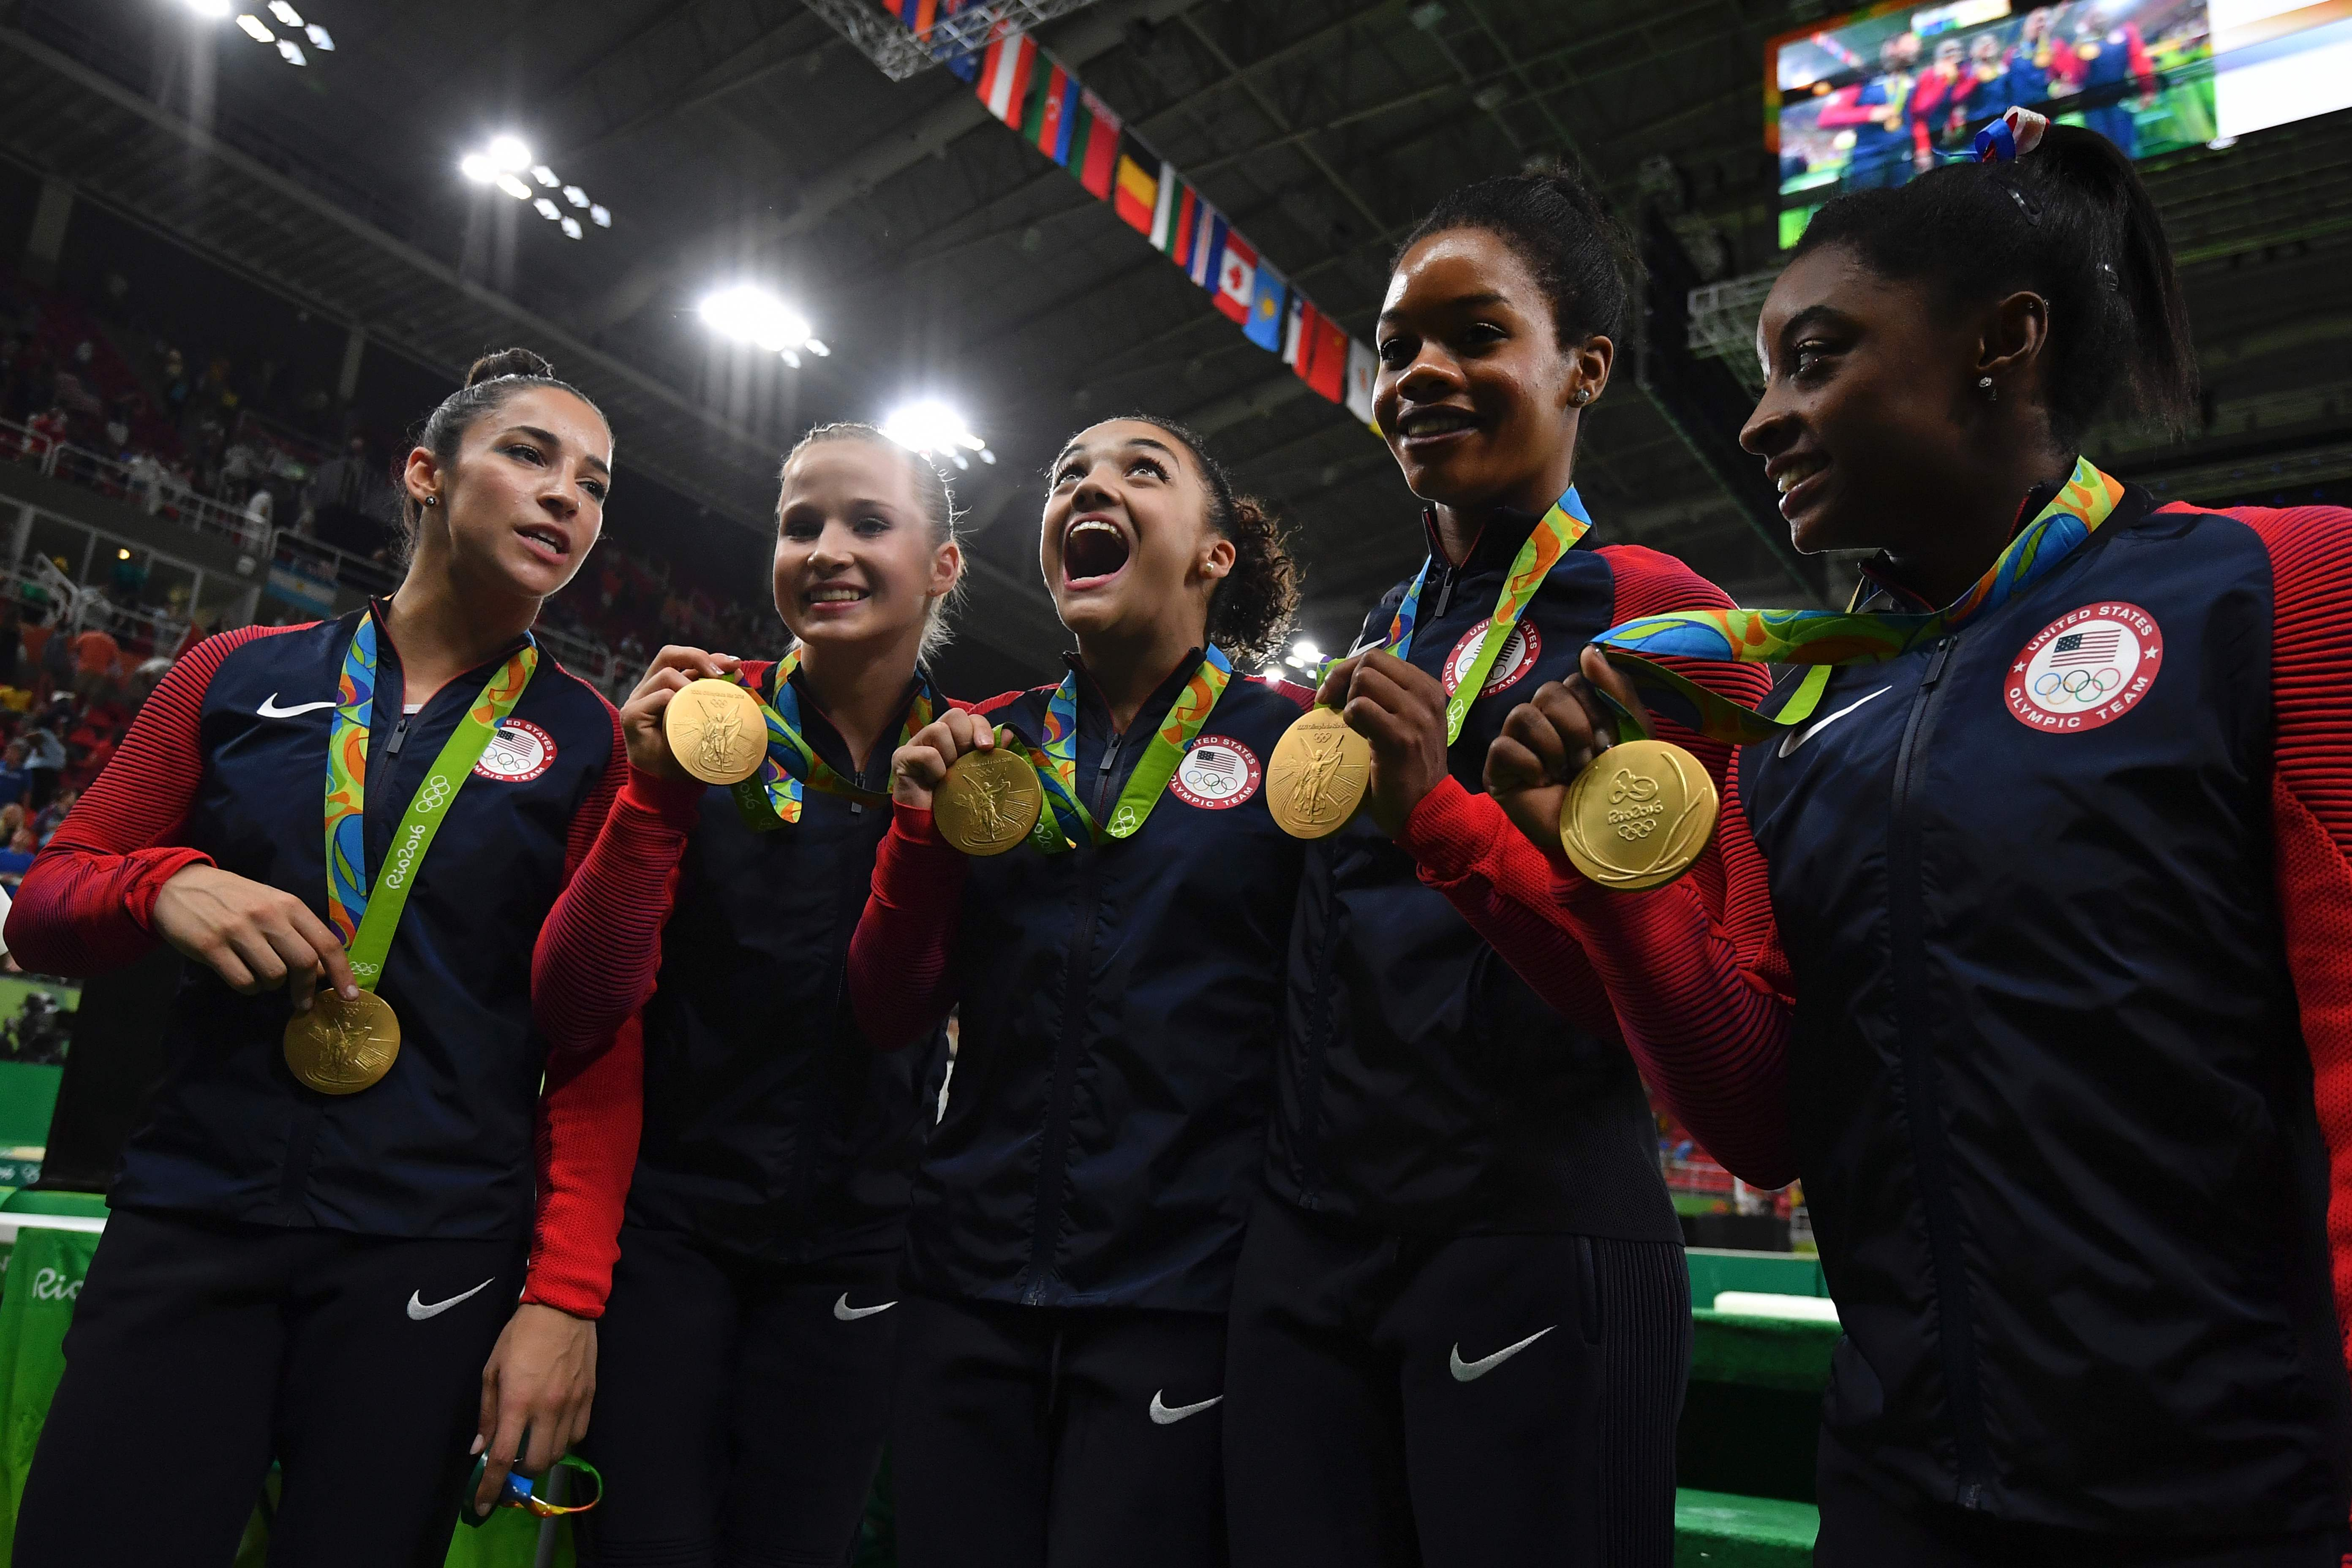 US gymnasts Alexandra Raisman, Madison Kocian, Lauren Hernandez, Gabrielle Douglas and Simone Biles celebrate with their medals on the podium during the women's team final Artistic Gymnastics at the Olympic Arena during the Rio 2016 Olympic Games in Rio de Janeiro on August 9, 2016.